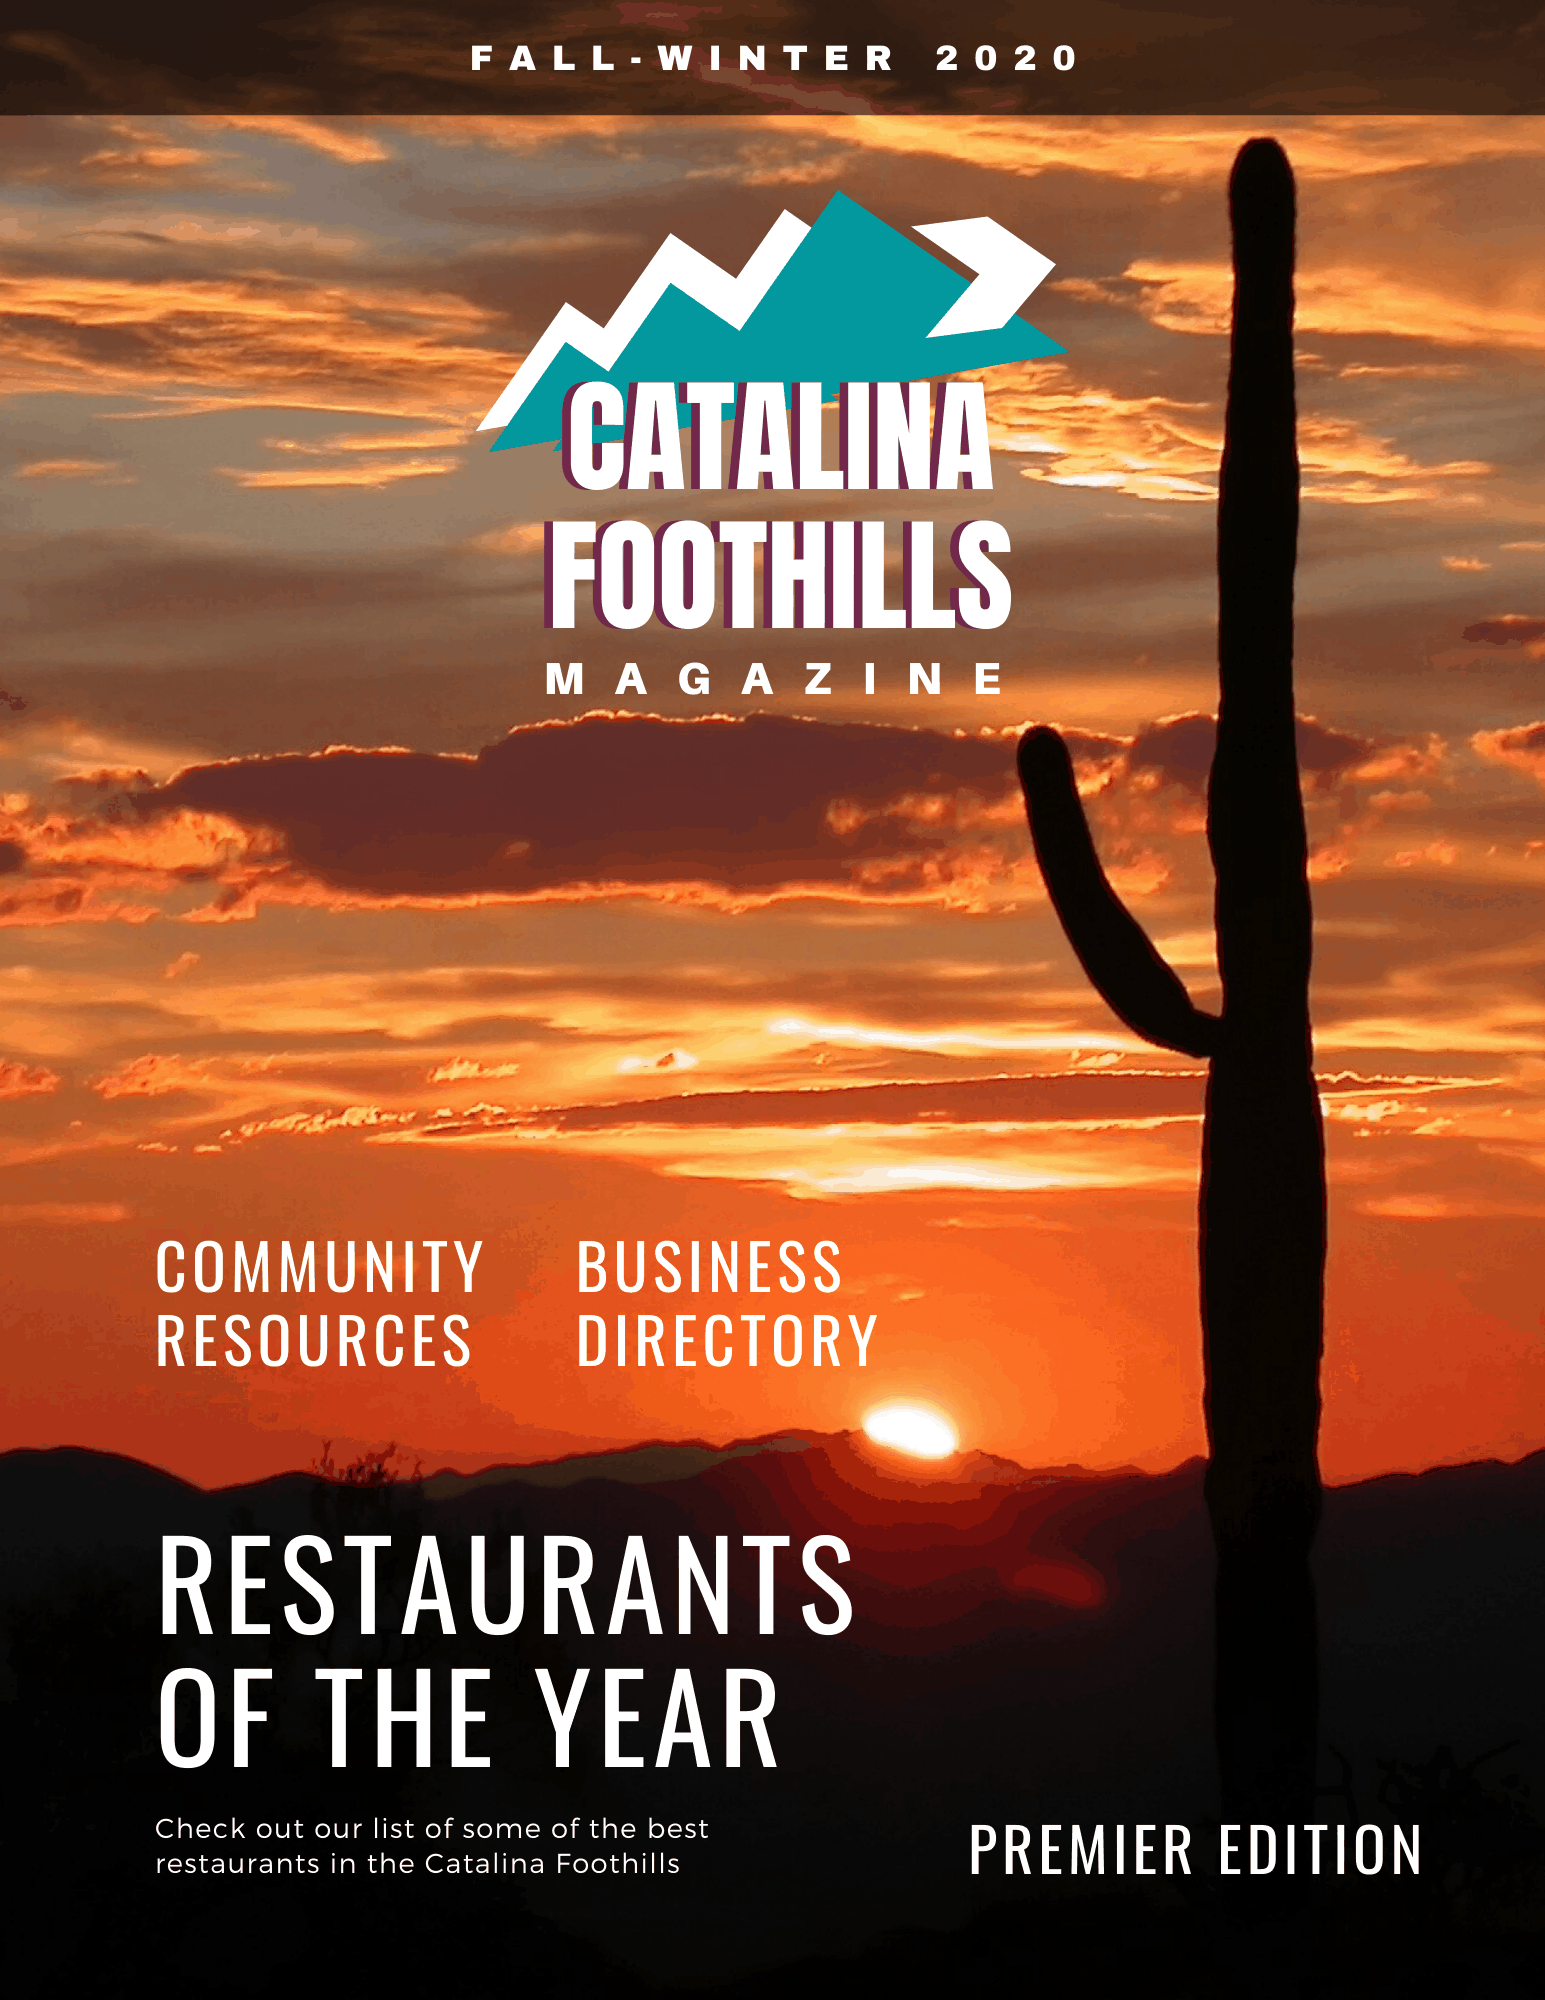 Catalina Foothills Magazine cover